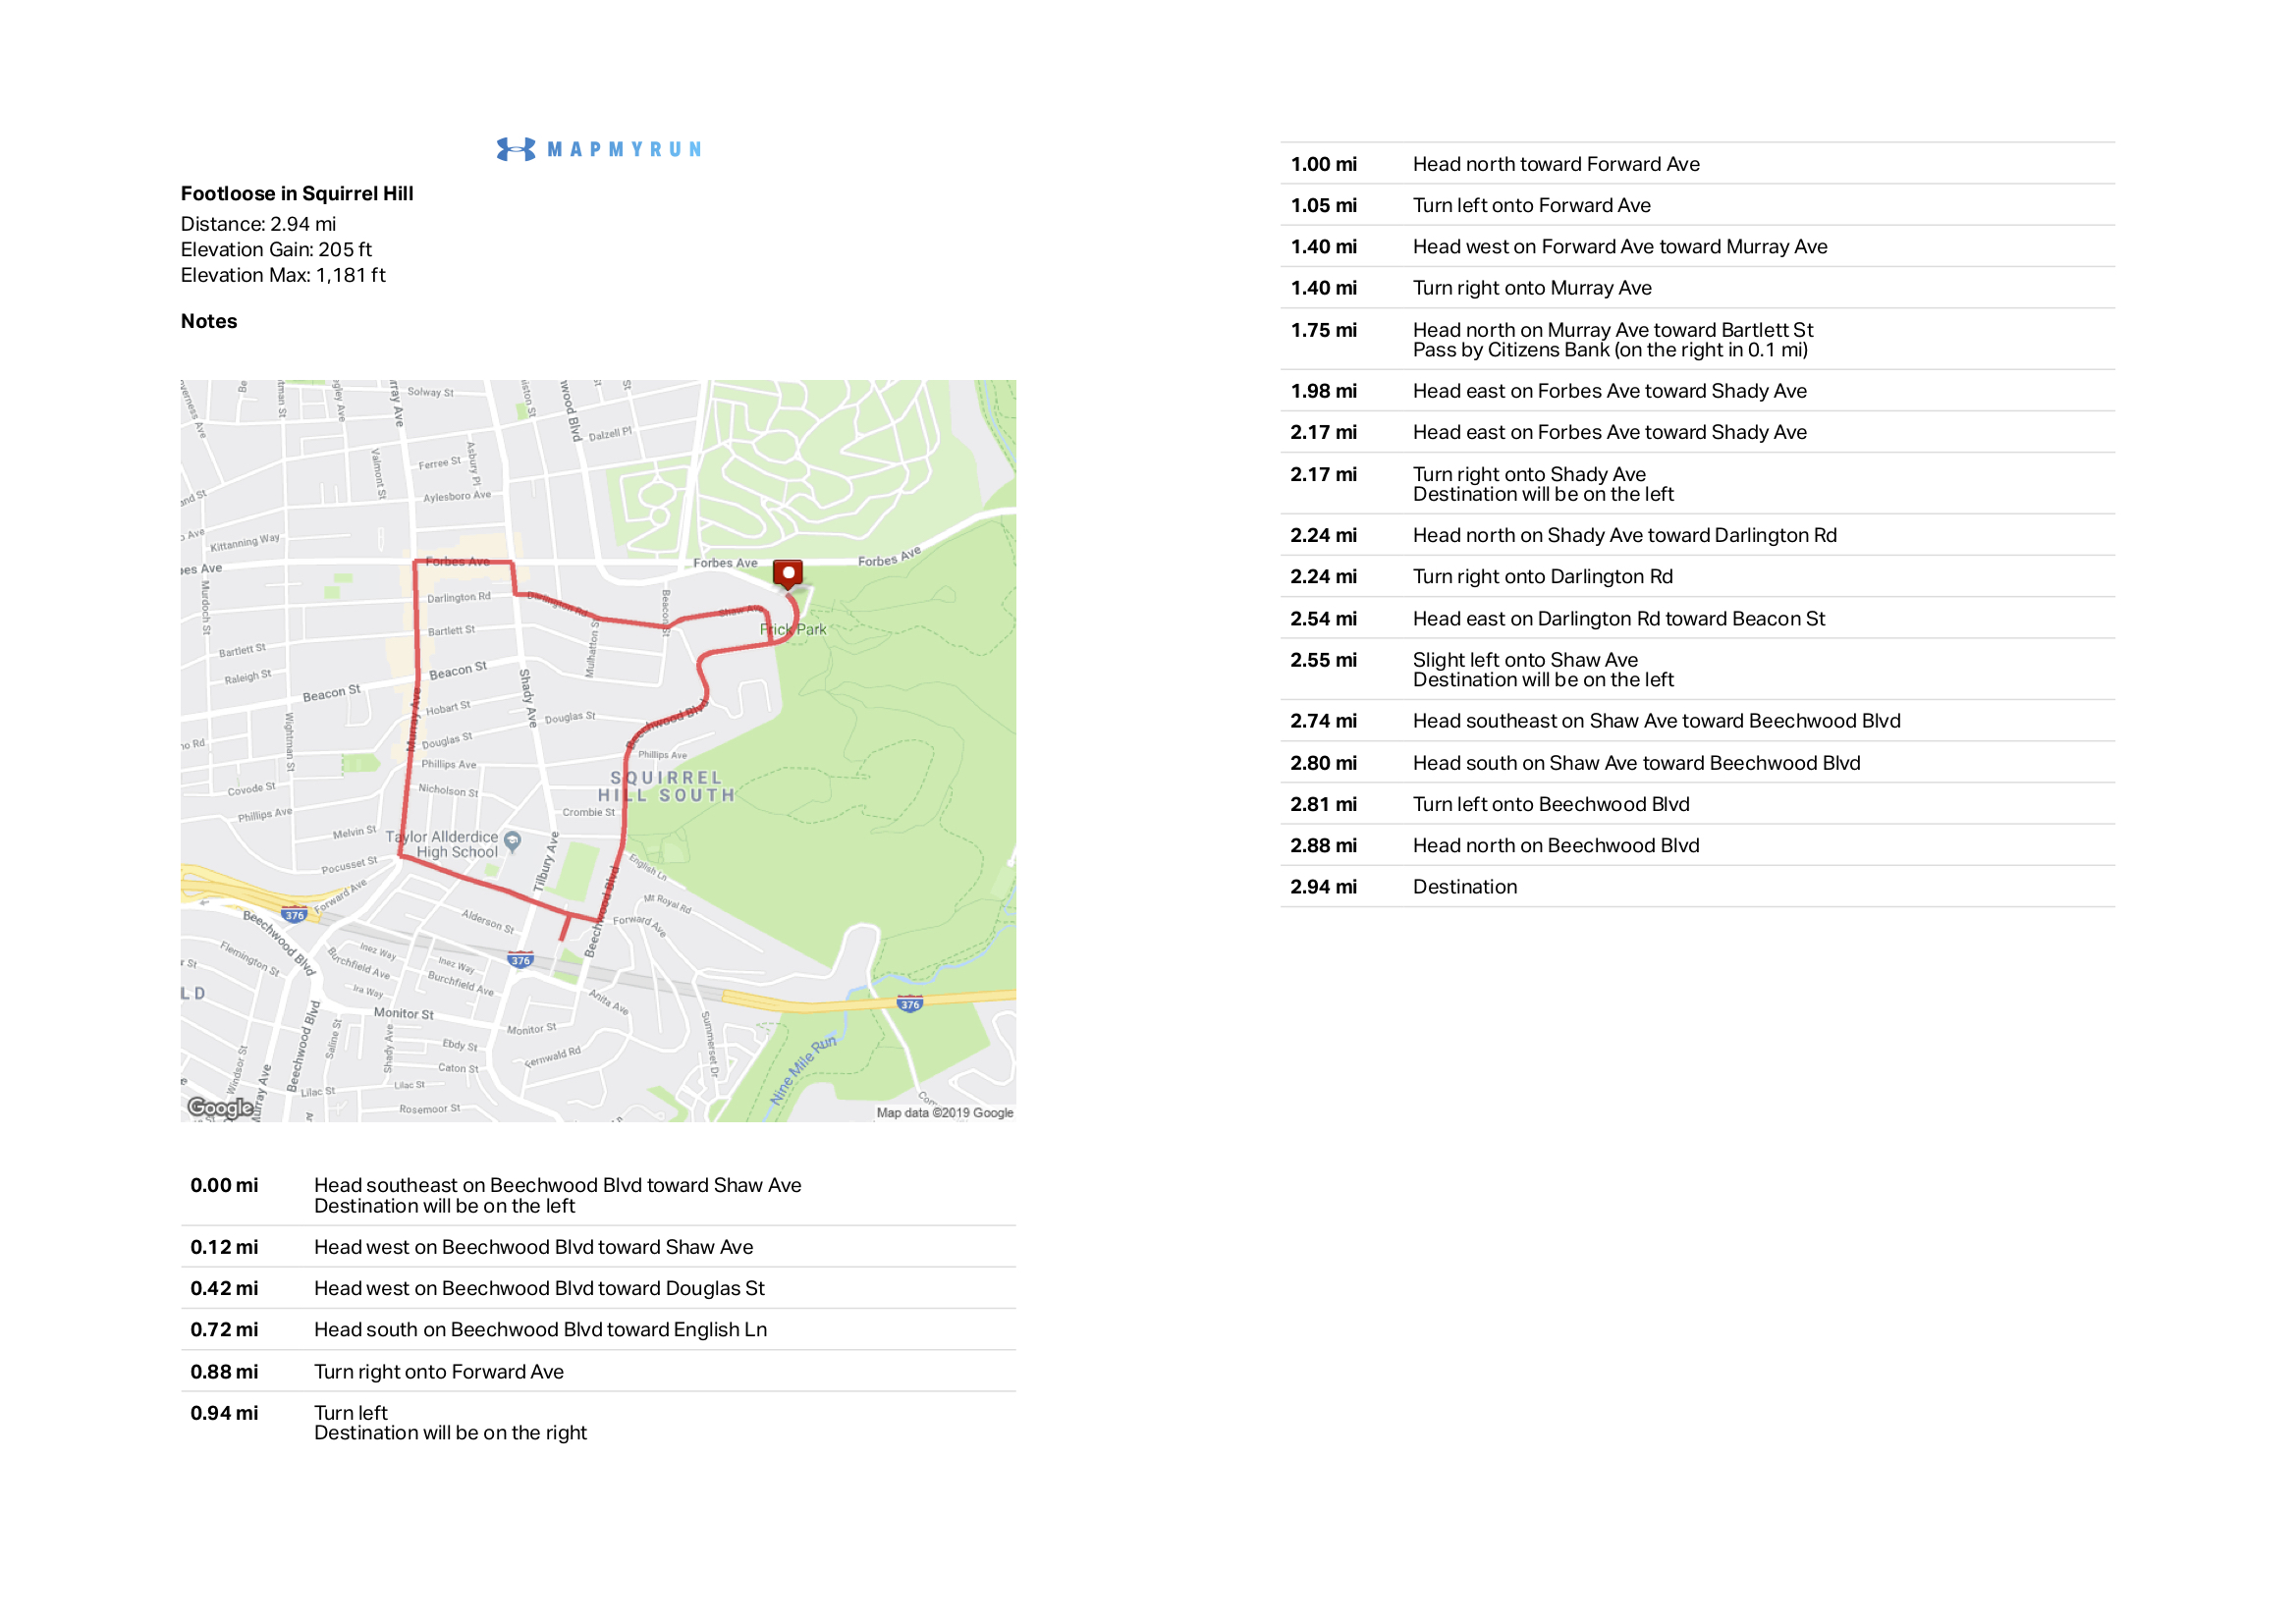 """Map and walking directions for """"Footloose in Squirrel Hill"""" route"""